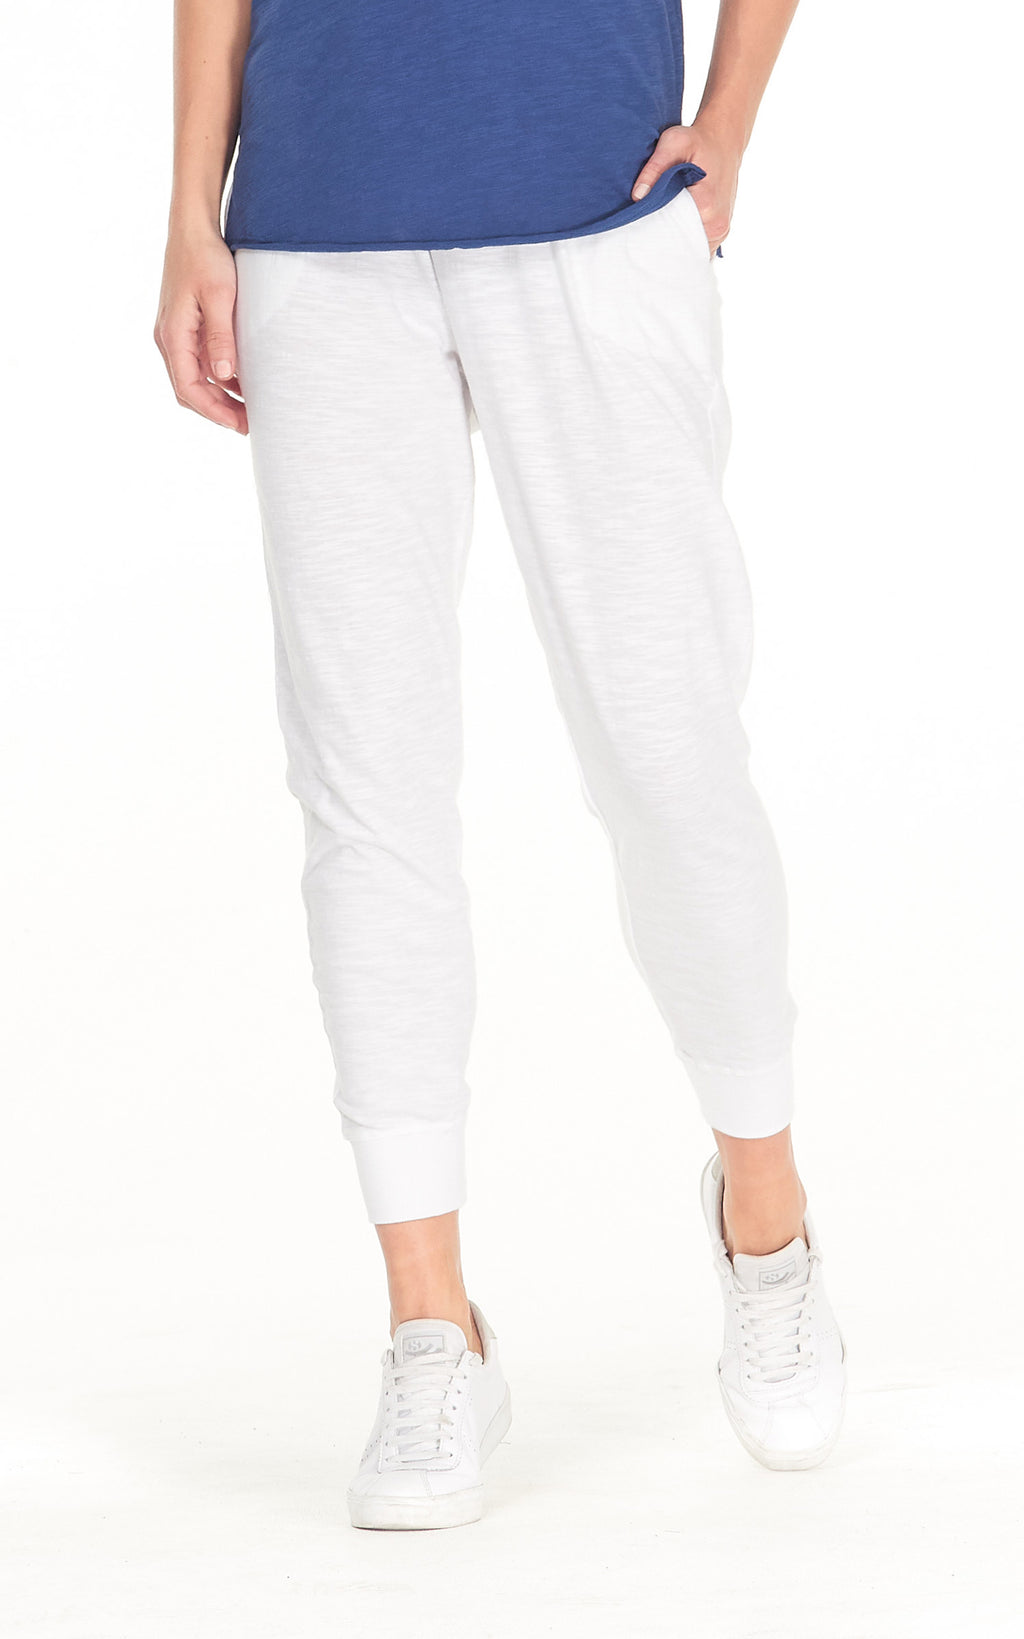 Cle` Camilla Pant in White